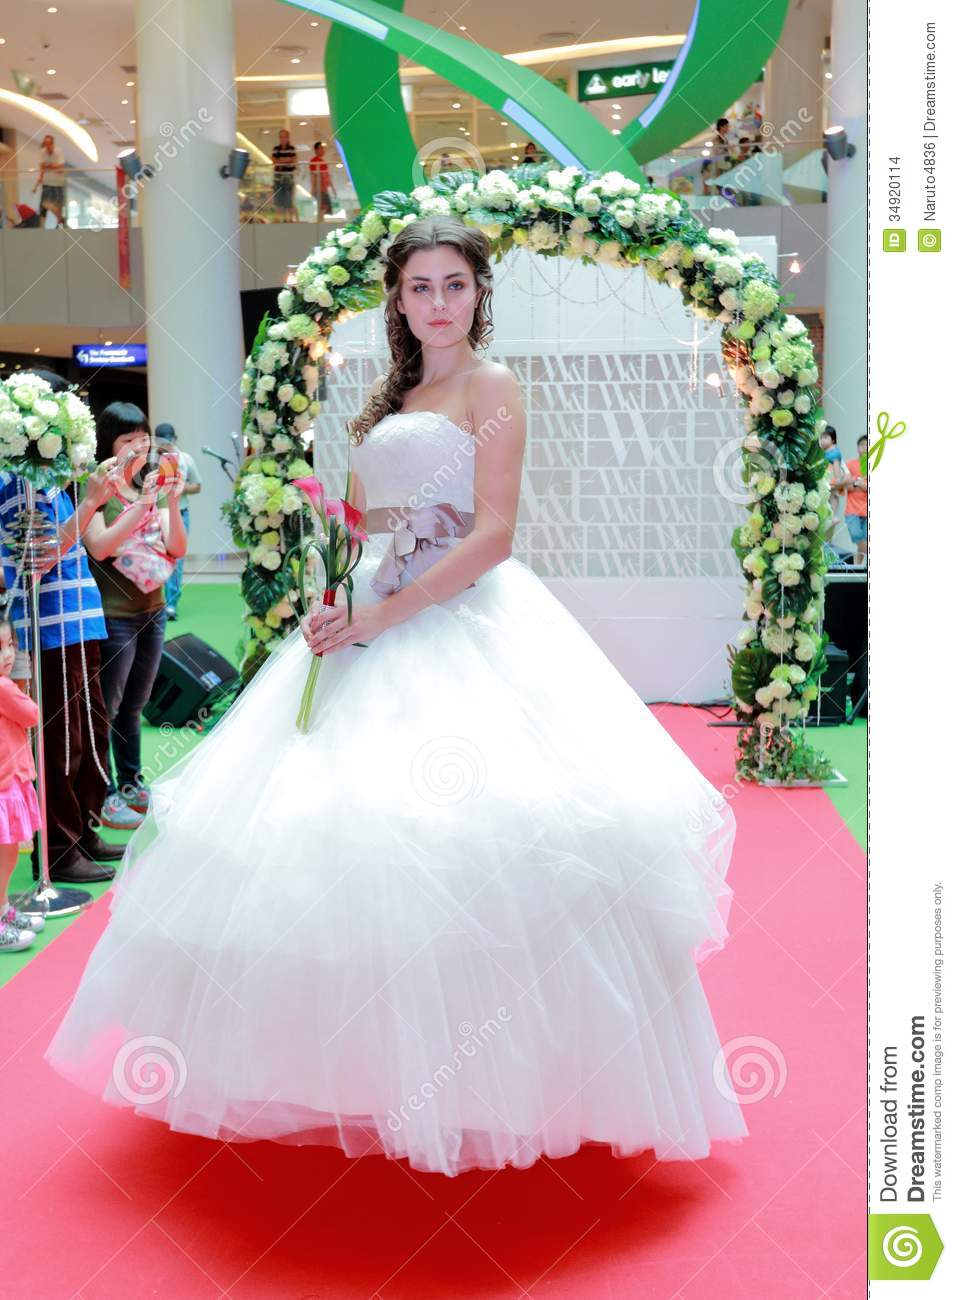 Wedding Dresses Fashion Show Editorial Stock Image - Image ...